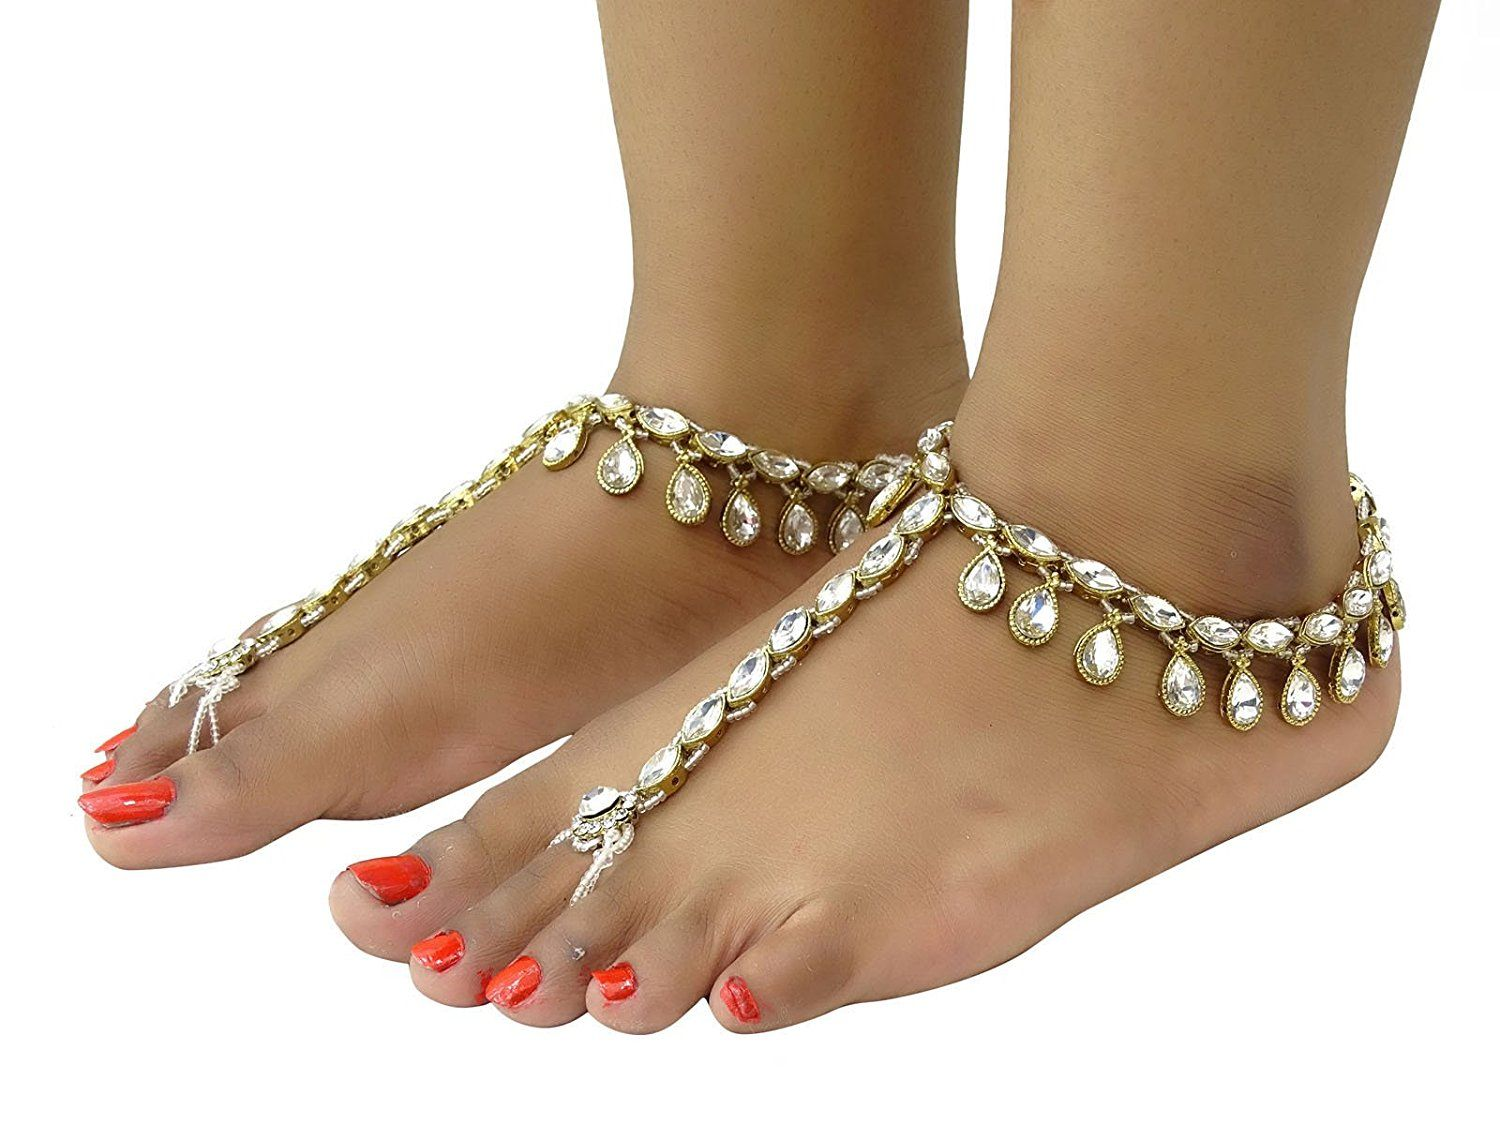 in new lovely chain aliexpress ankle from jewelry com anklets bracelets anklet gold designer accessories on foot plated item design rows alibaba bell yellow